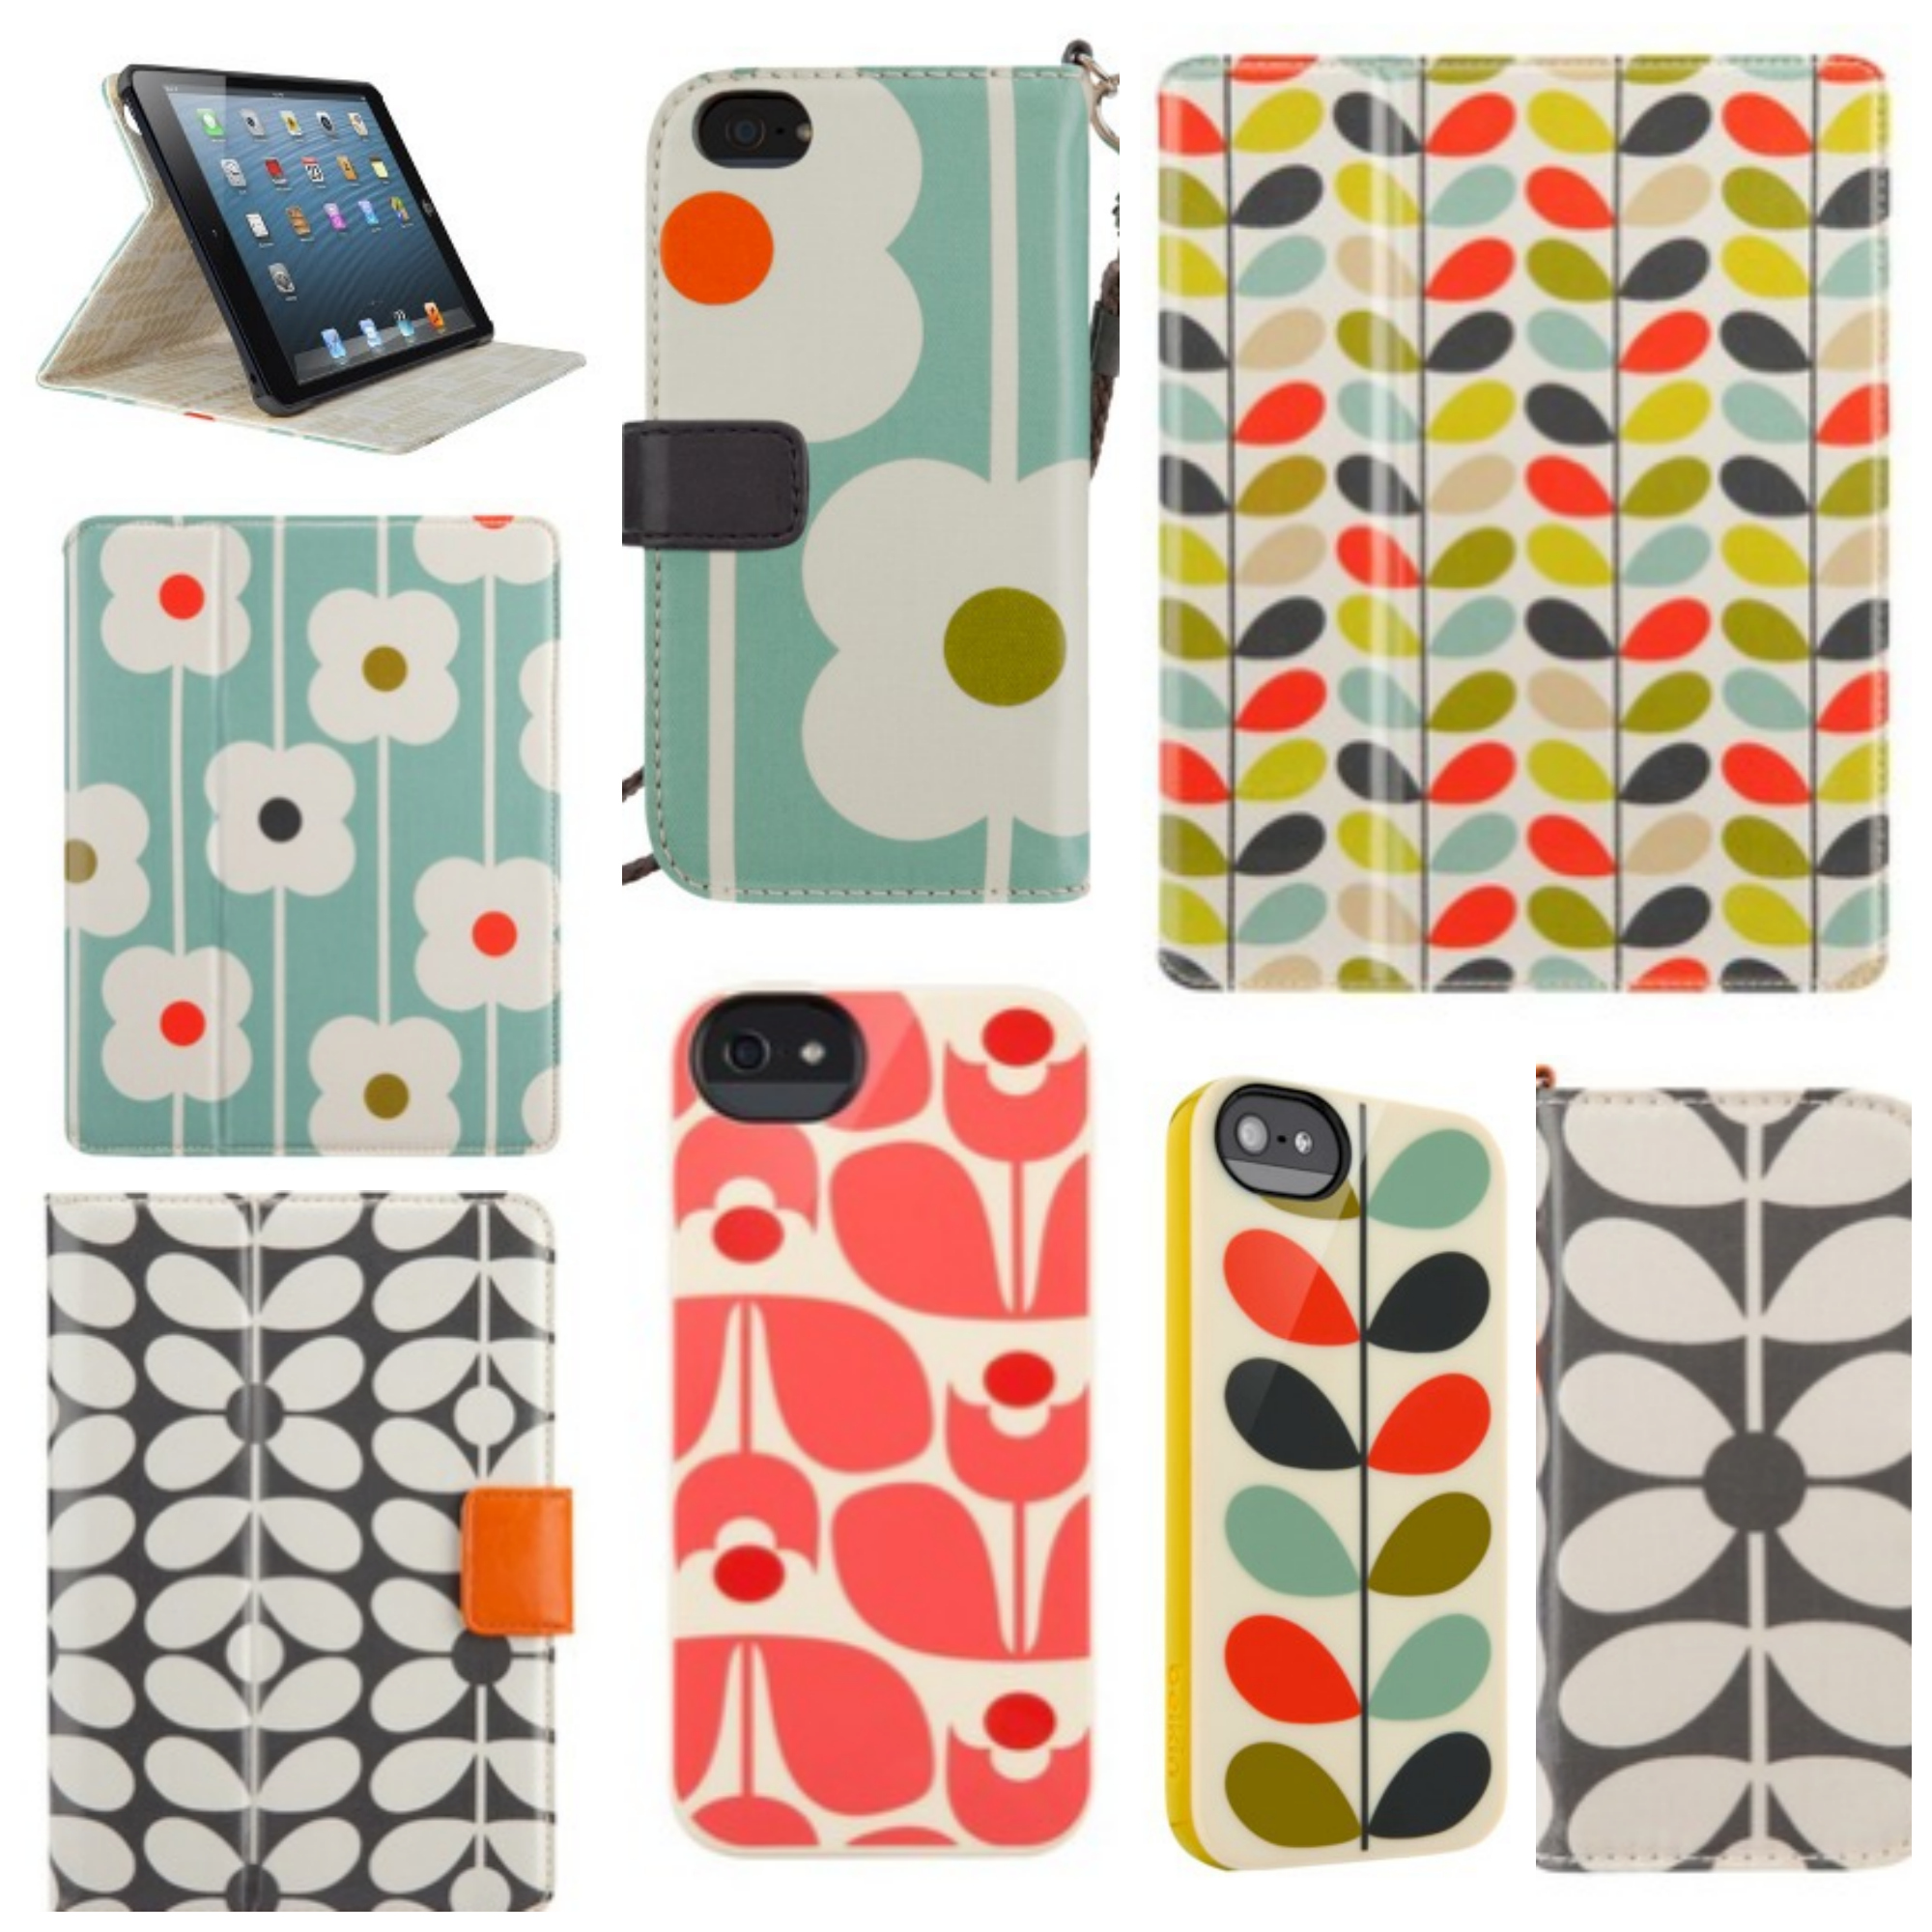 302d8ecc6642a Orla Kiely iPhone   iPad Accessories at Target - Savvy Sassy Moms